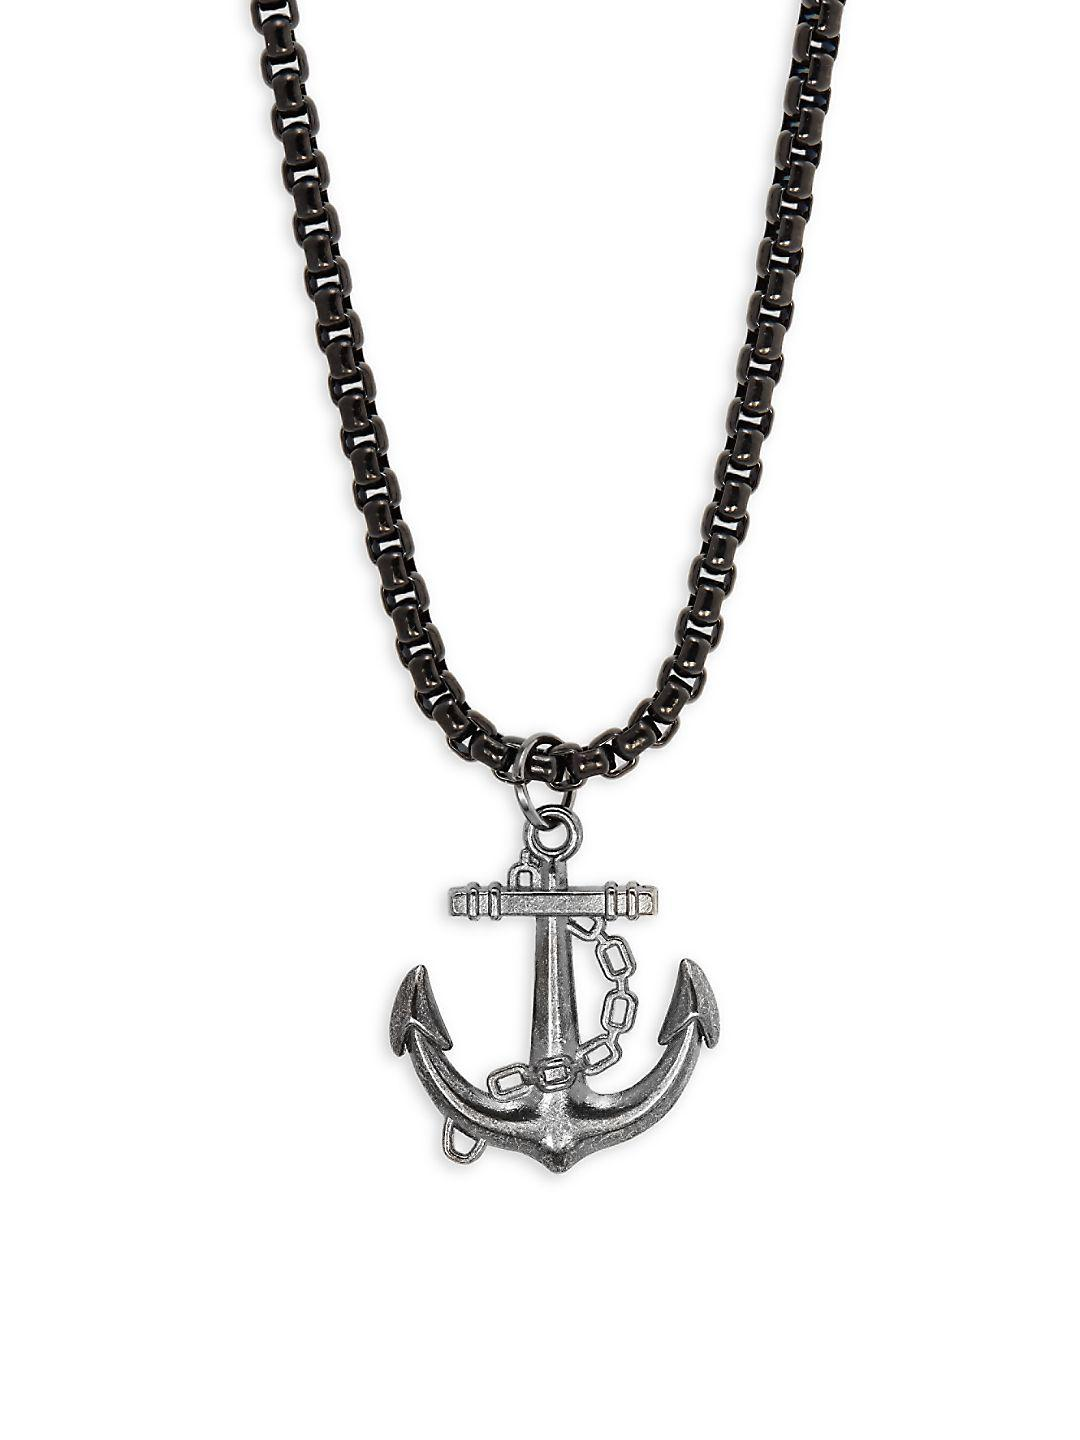 Perepaix Stainless Steel Anchor Pendant Necklace in Black